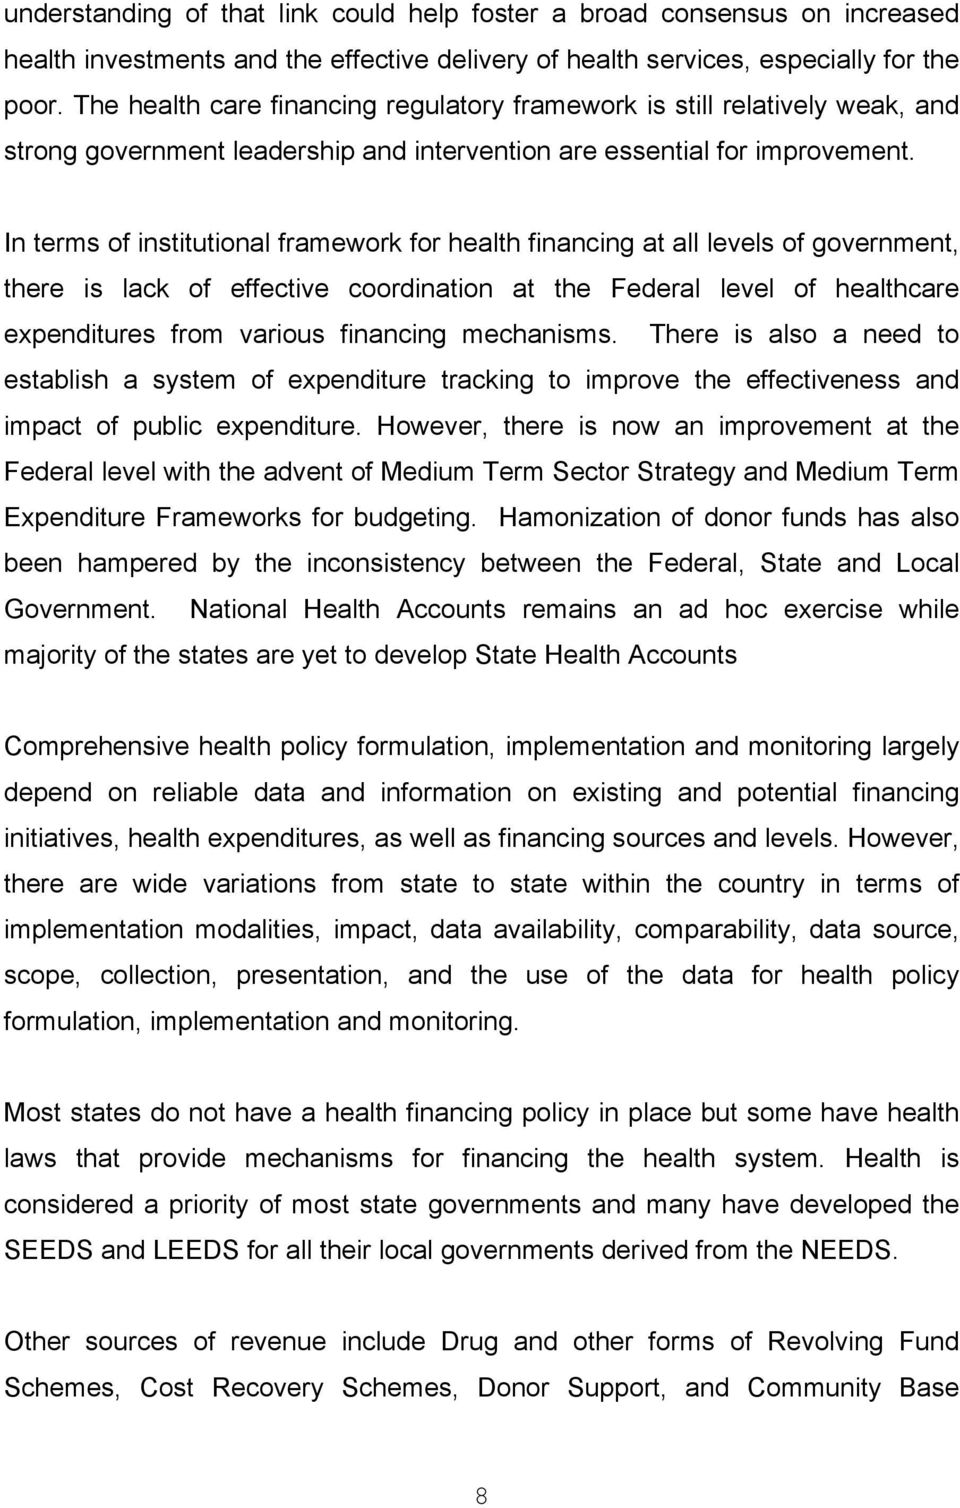 In terms of institutional framework for health financing at all levels of government, there is lack of effective coordination at the Federal level of healthcare expenditures from various financing